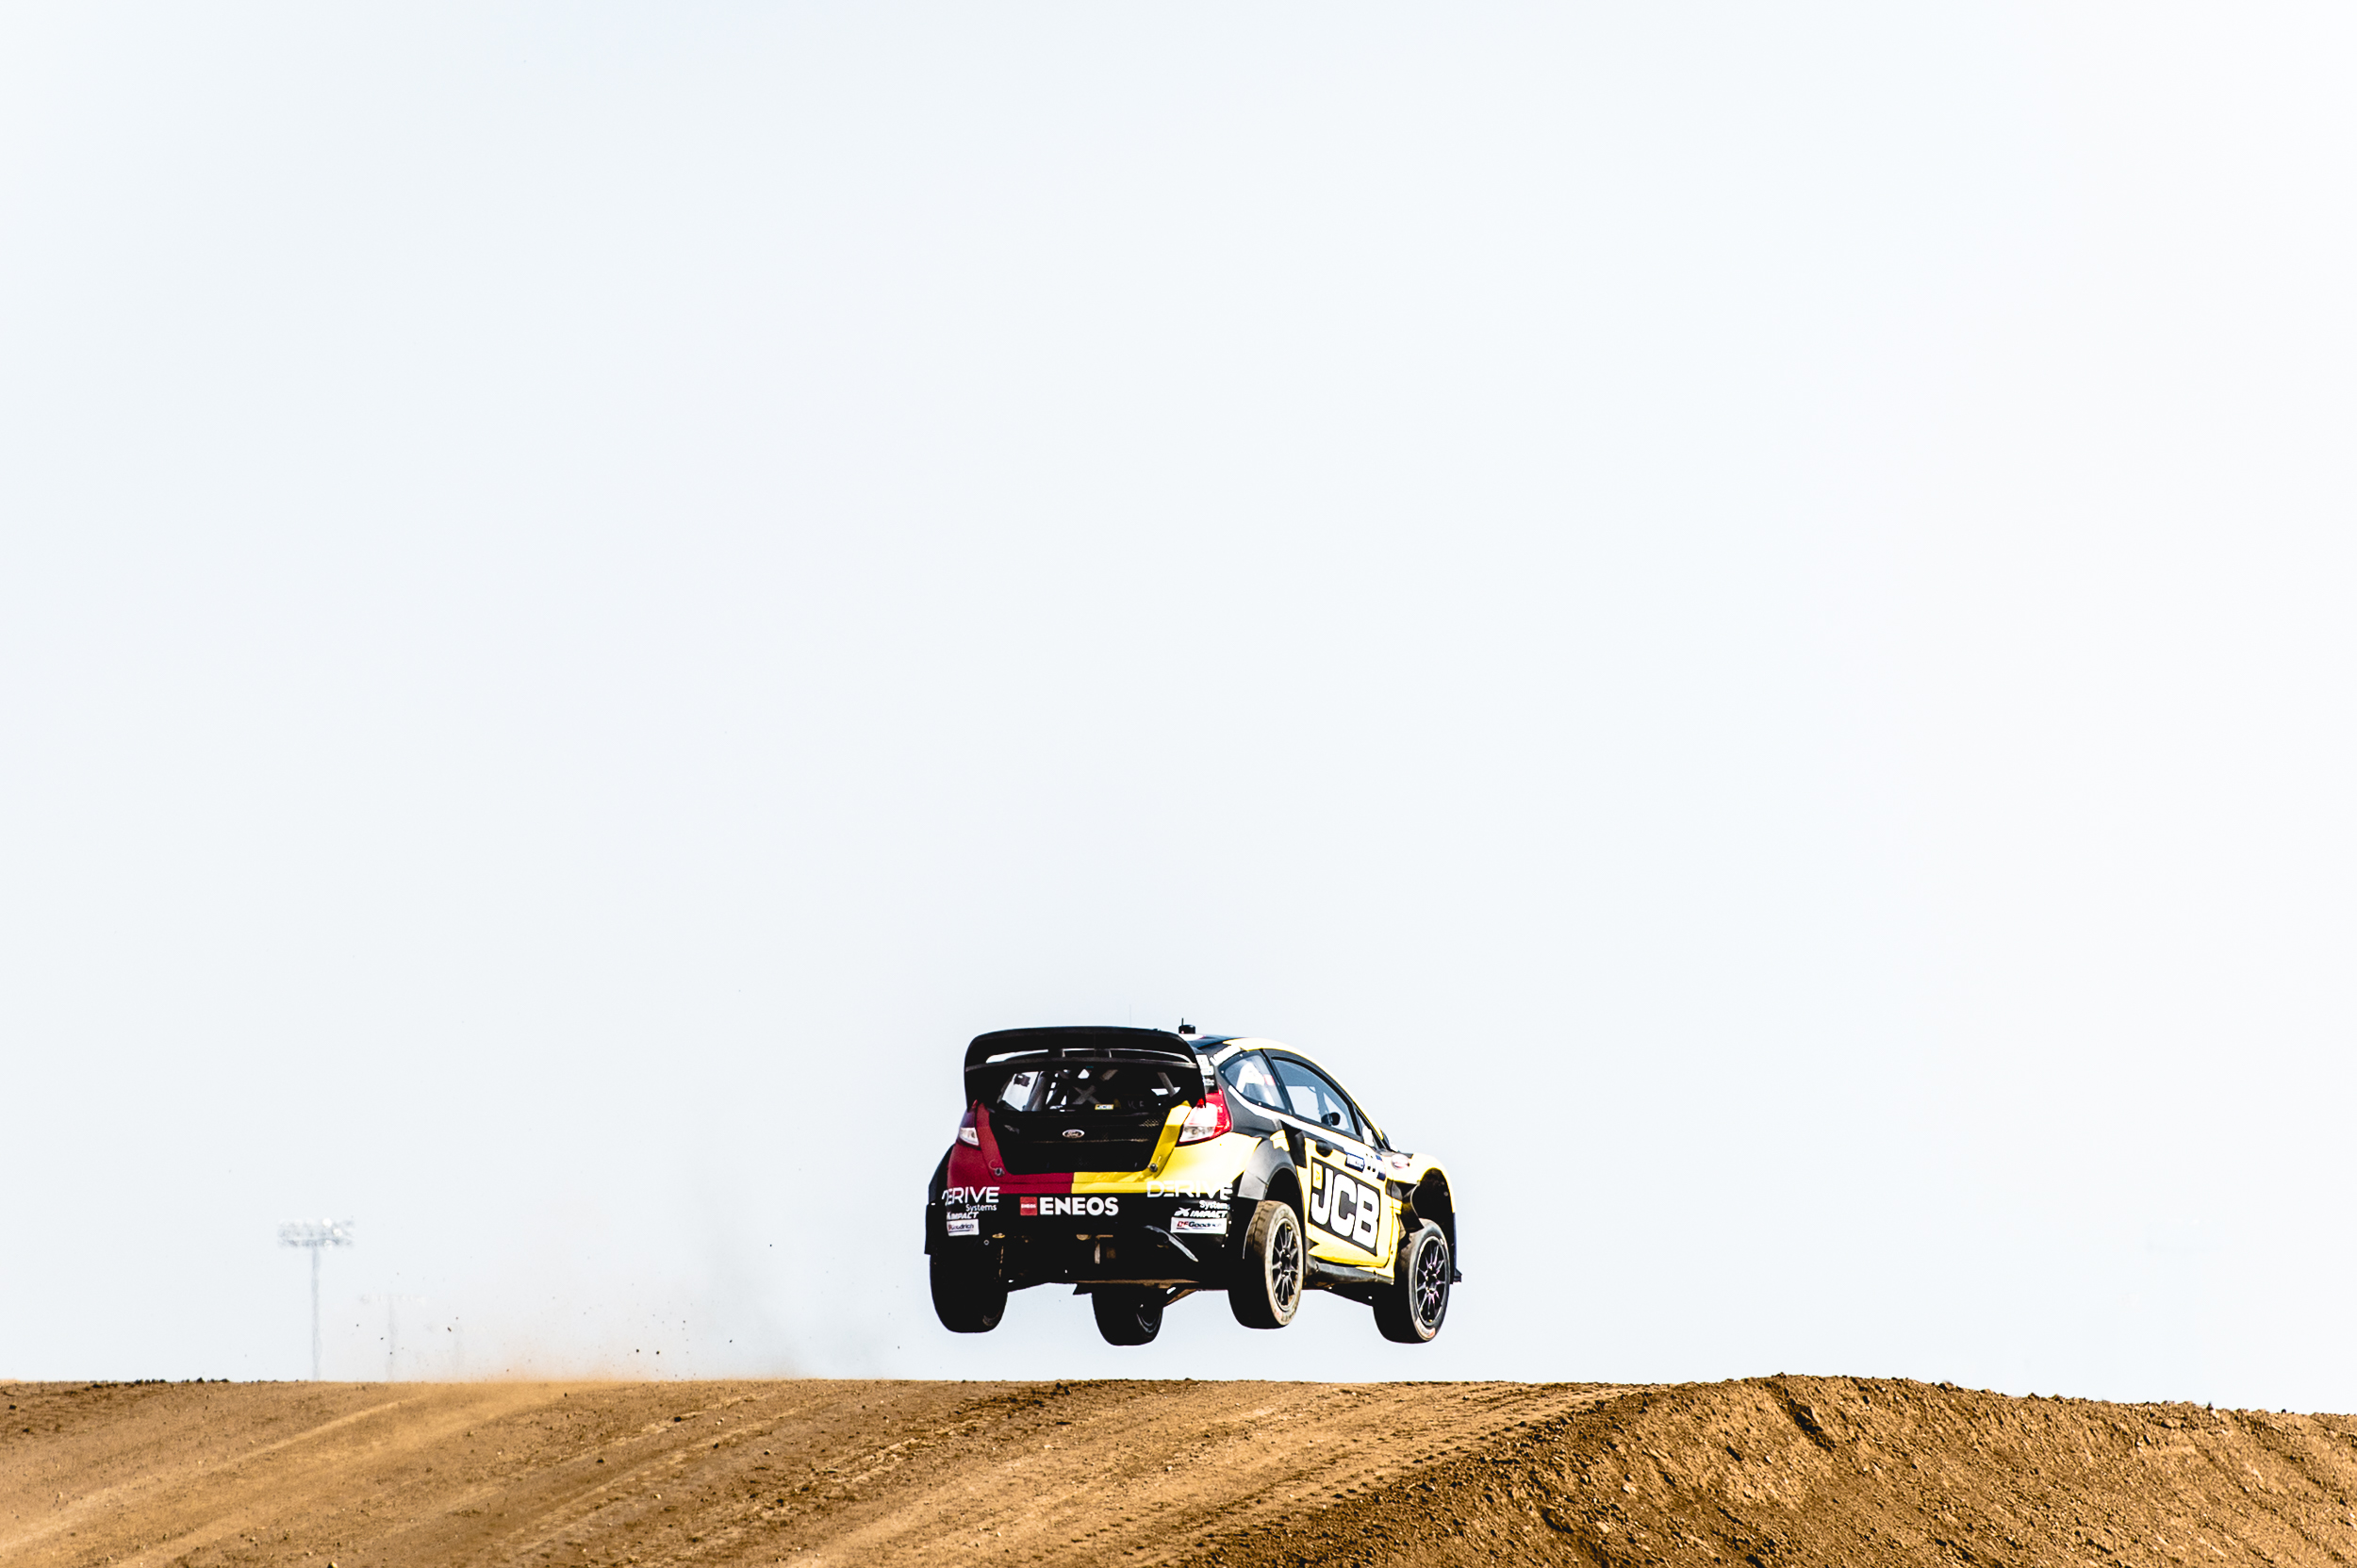 Red Bull Cross Rally, Photo Alessio Neri-1-7.jpg